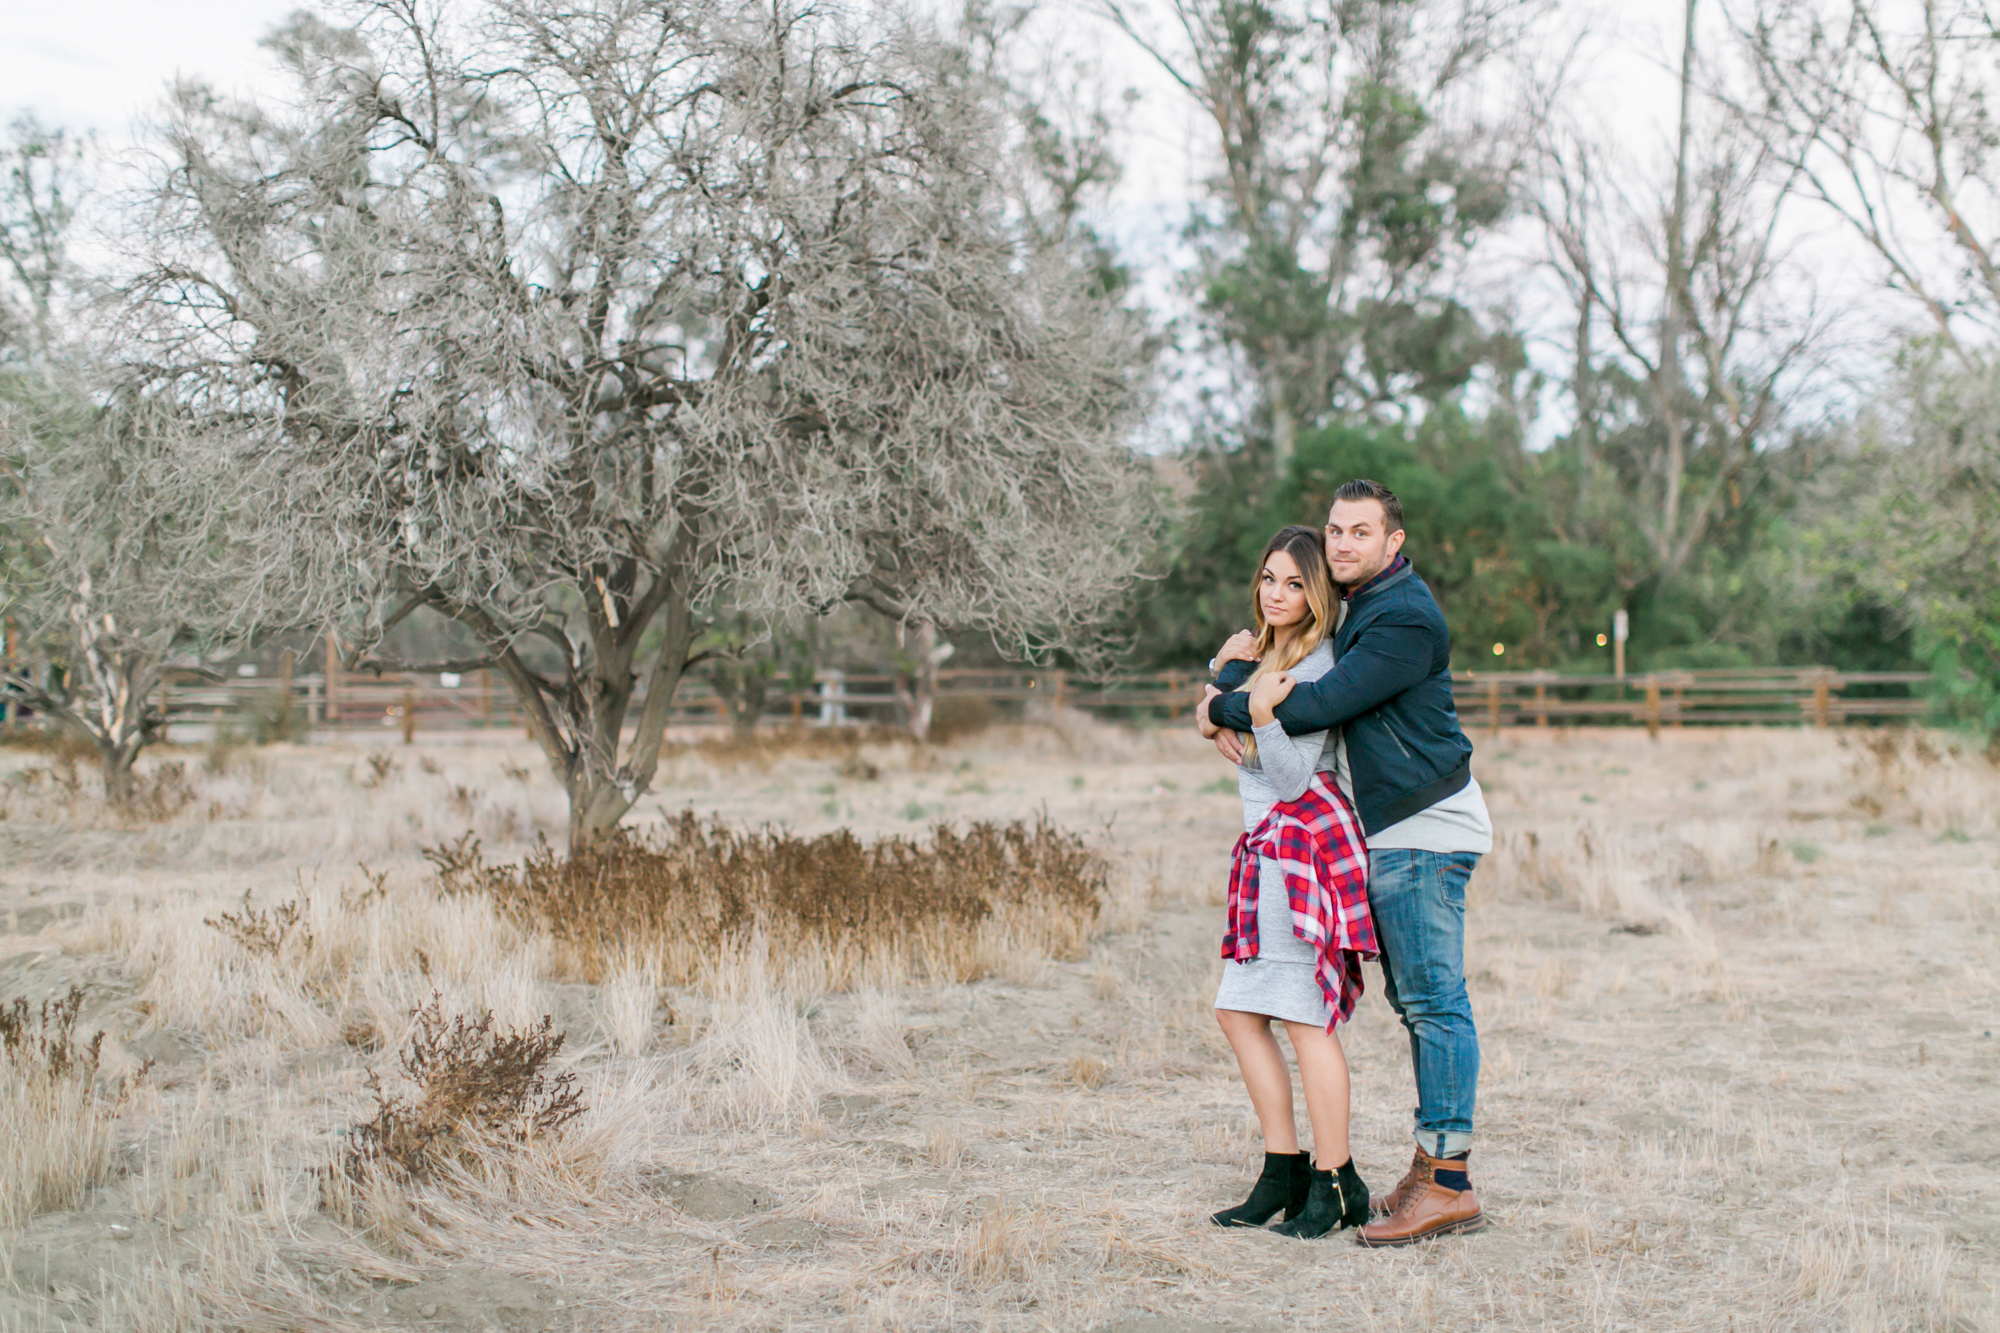 Lovisa Photo- Engagement Photography- San Juan Capistrano, California- The Mission- Los Rios District- Orange County